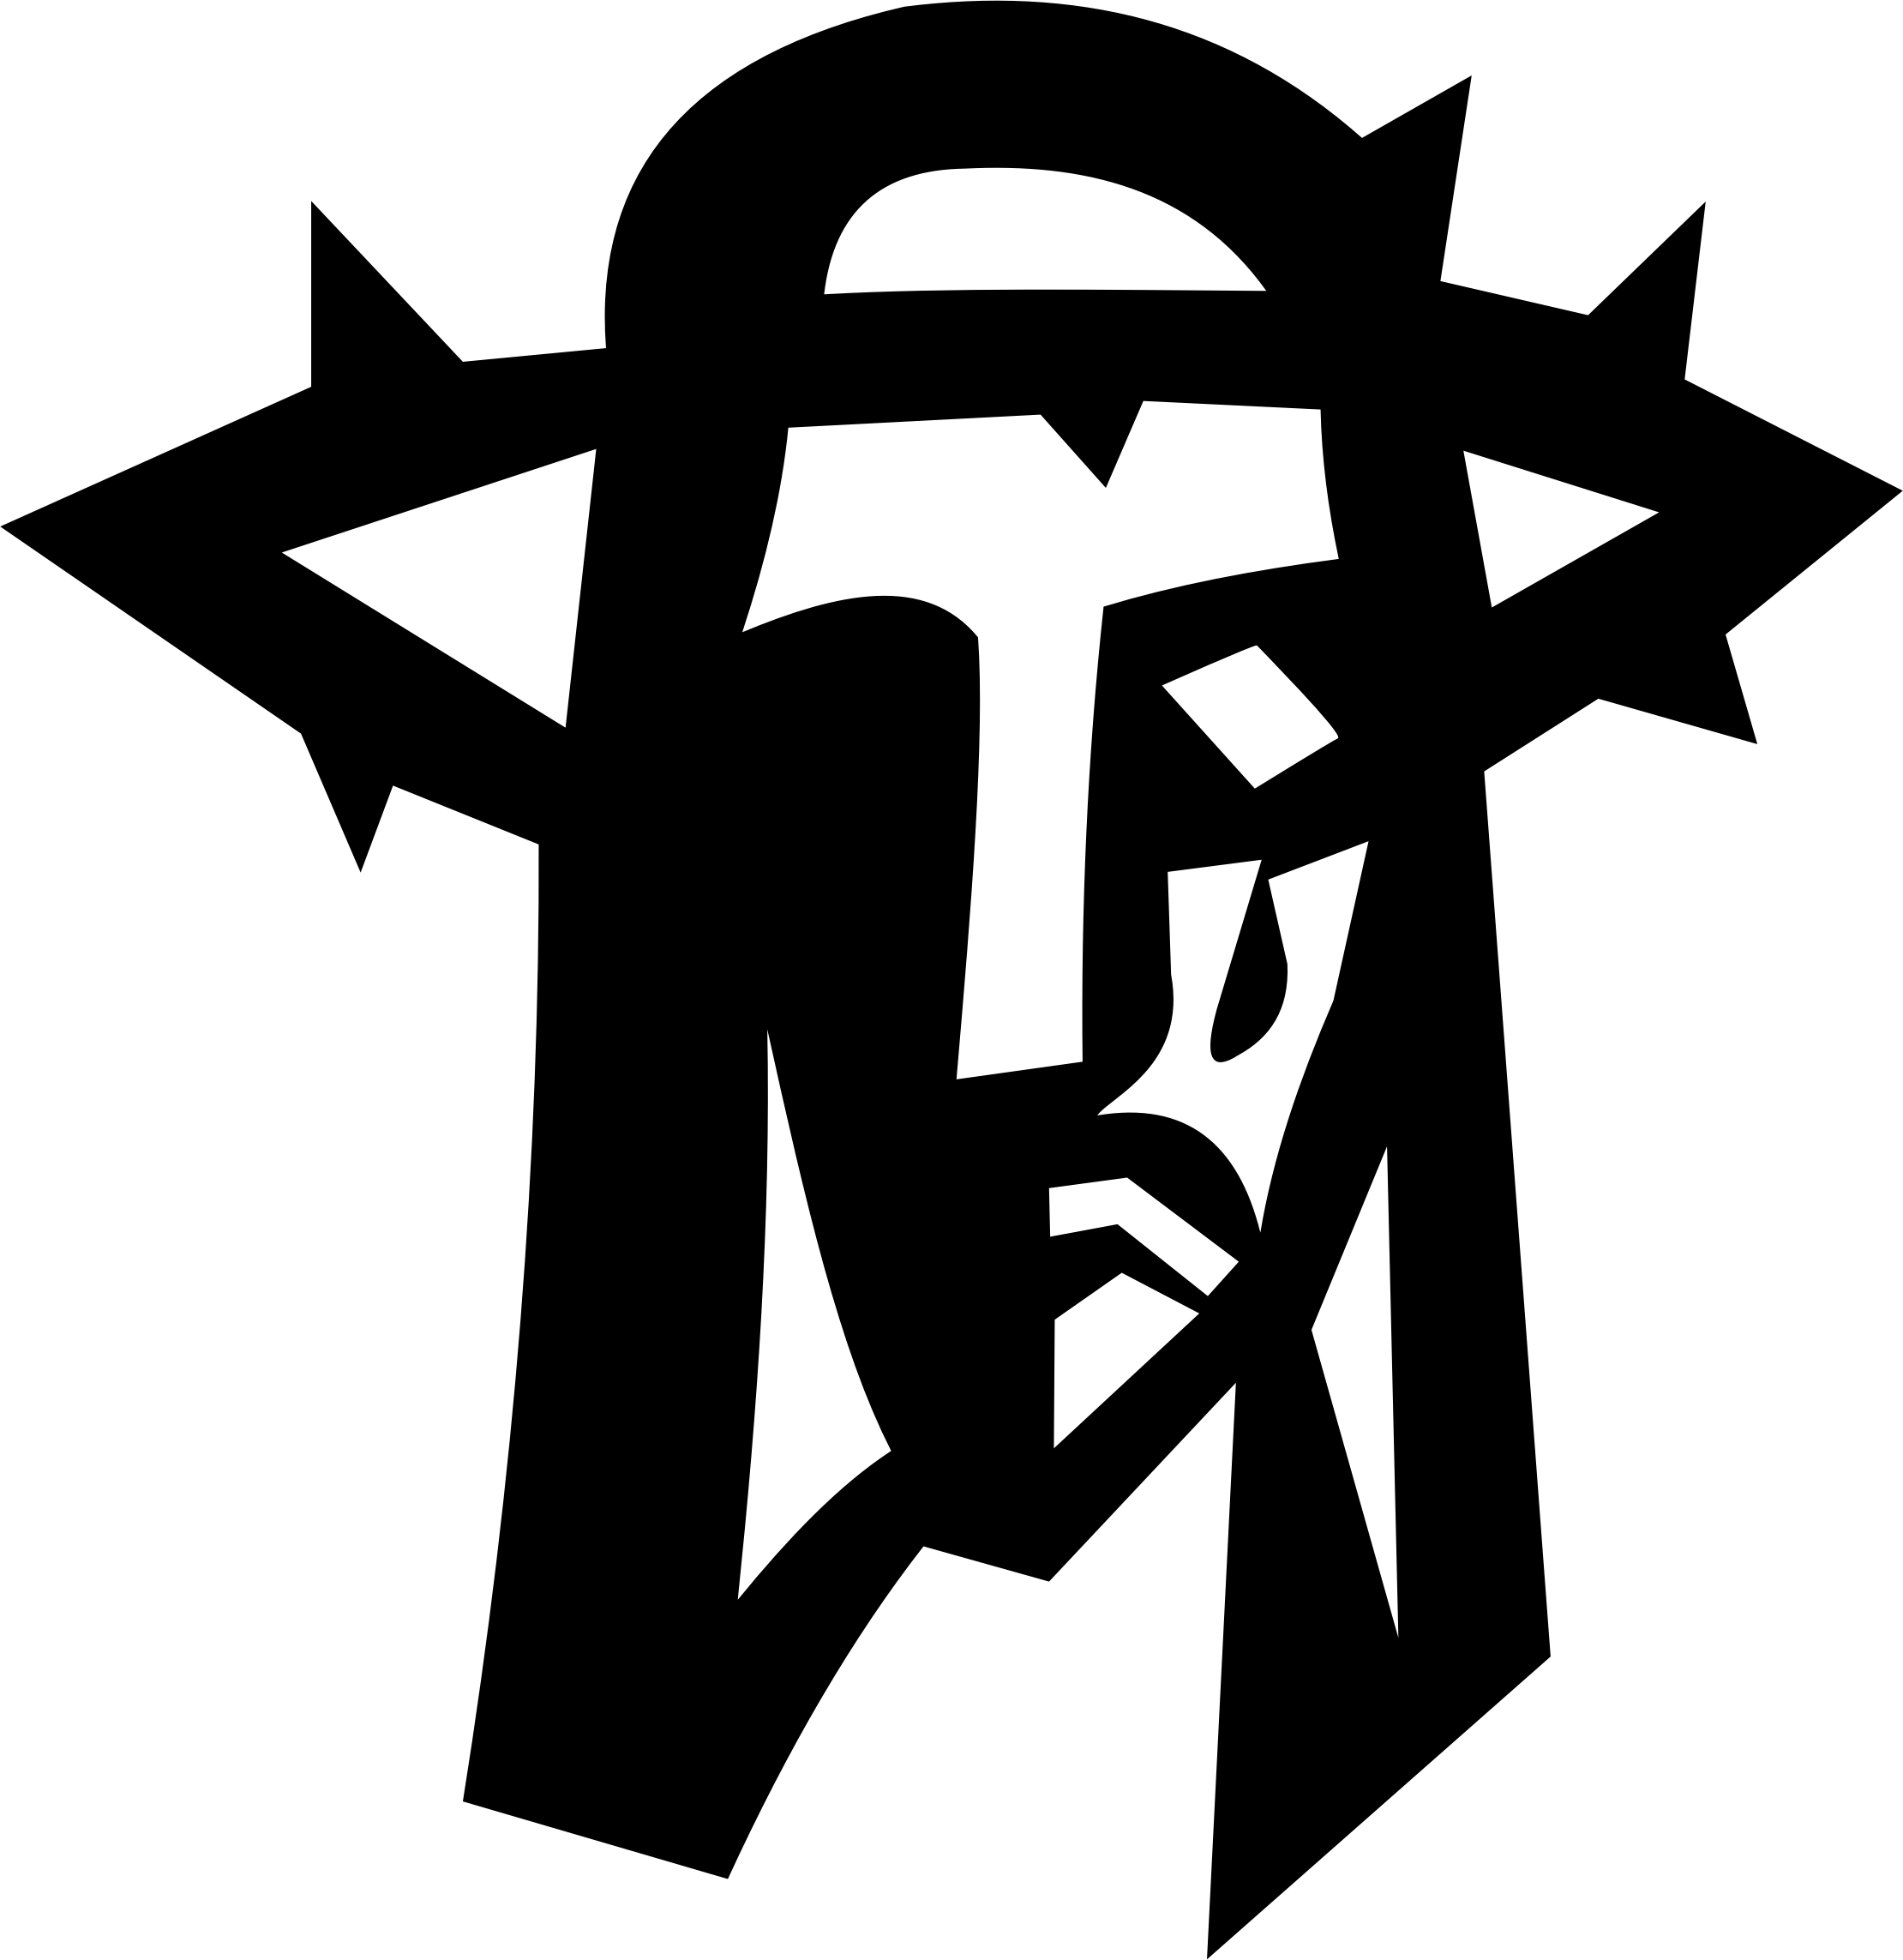 Jesus on cross with crown of thorns clipart.